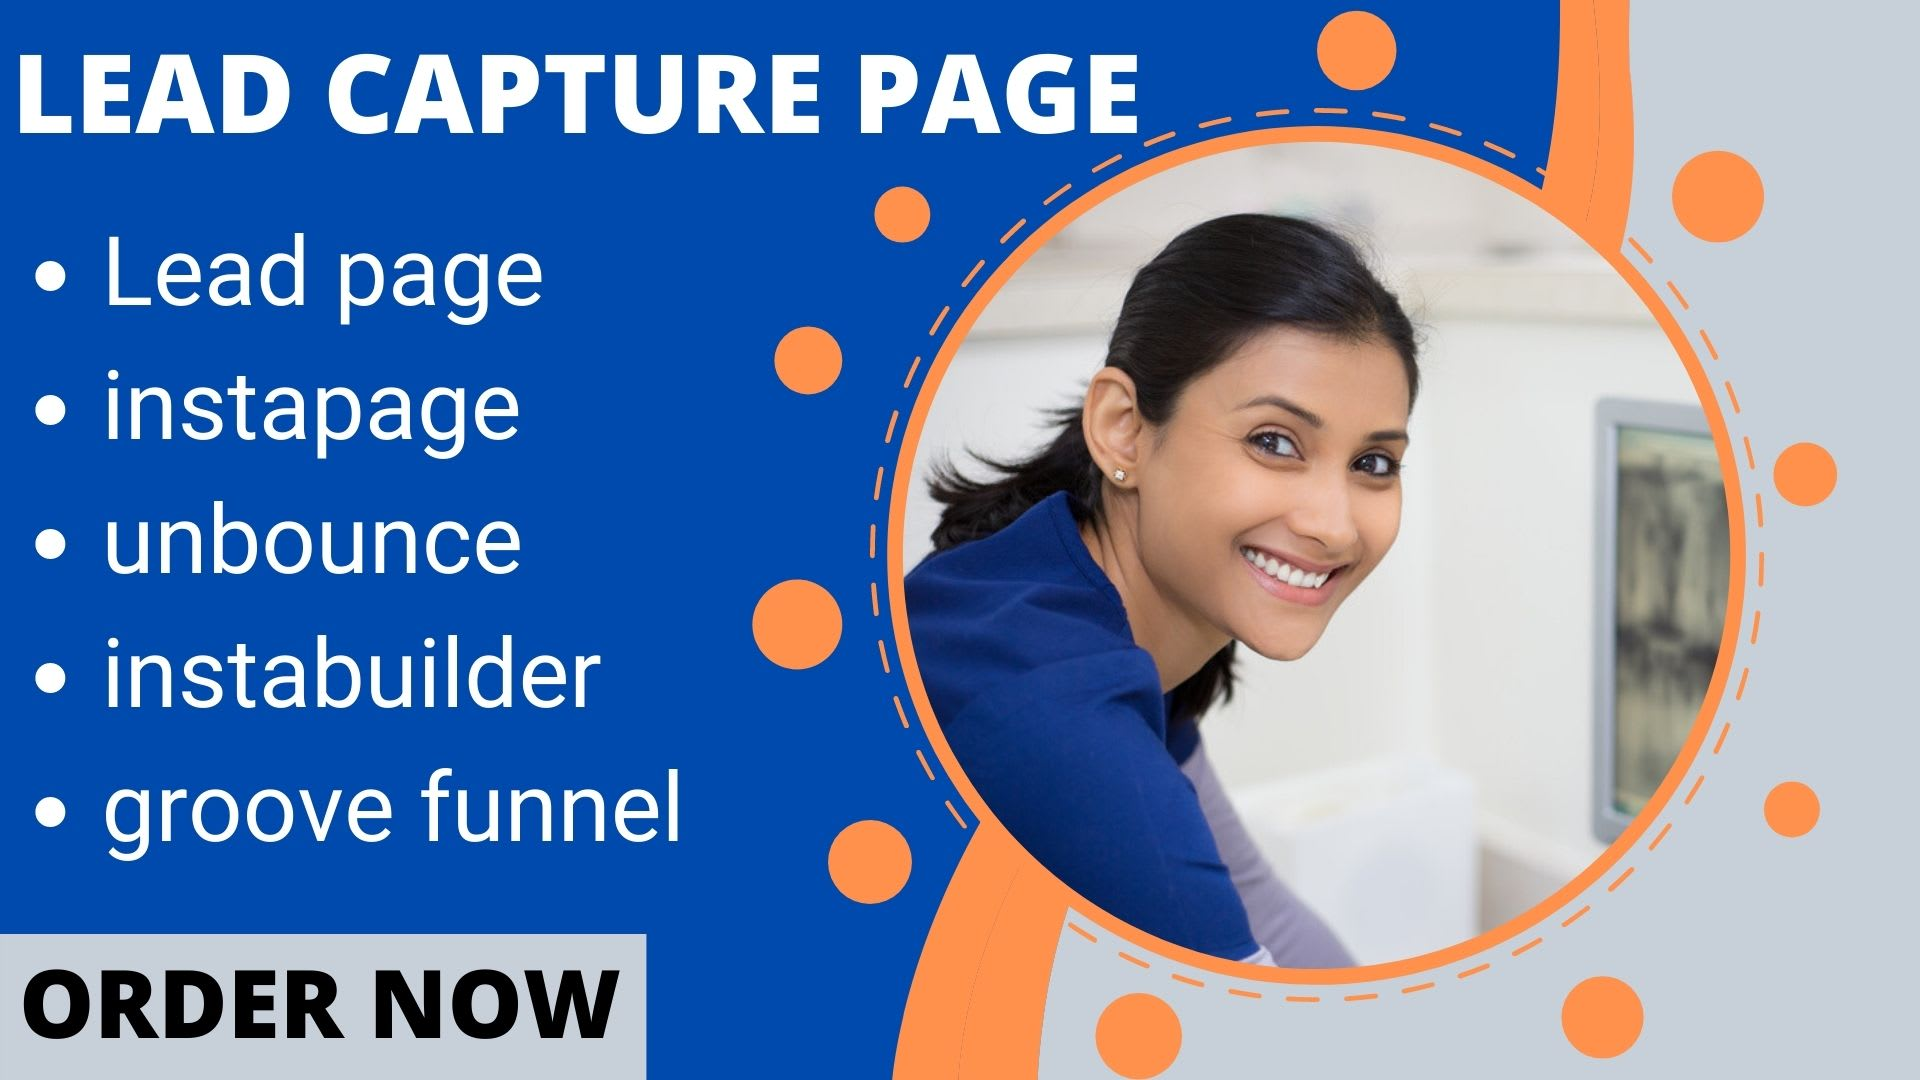 I will groove funnel, instabuilder, instapage, leadpage, unbounce landing page, FiverrBox